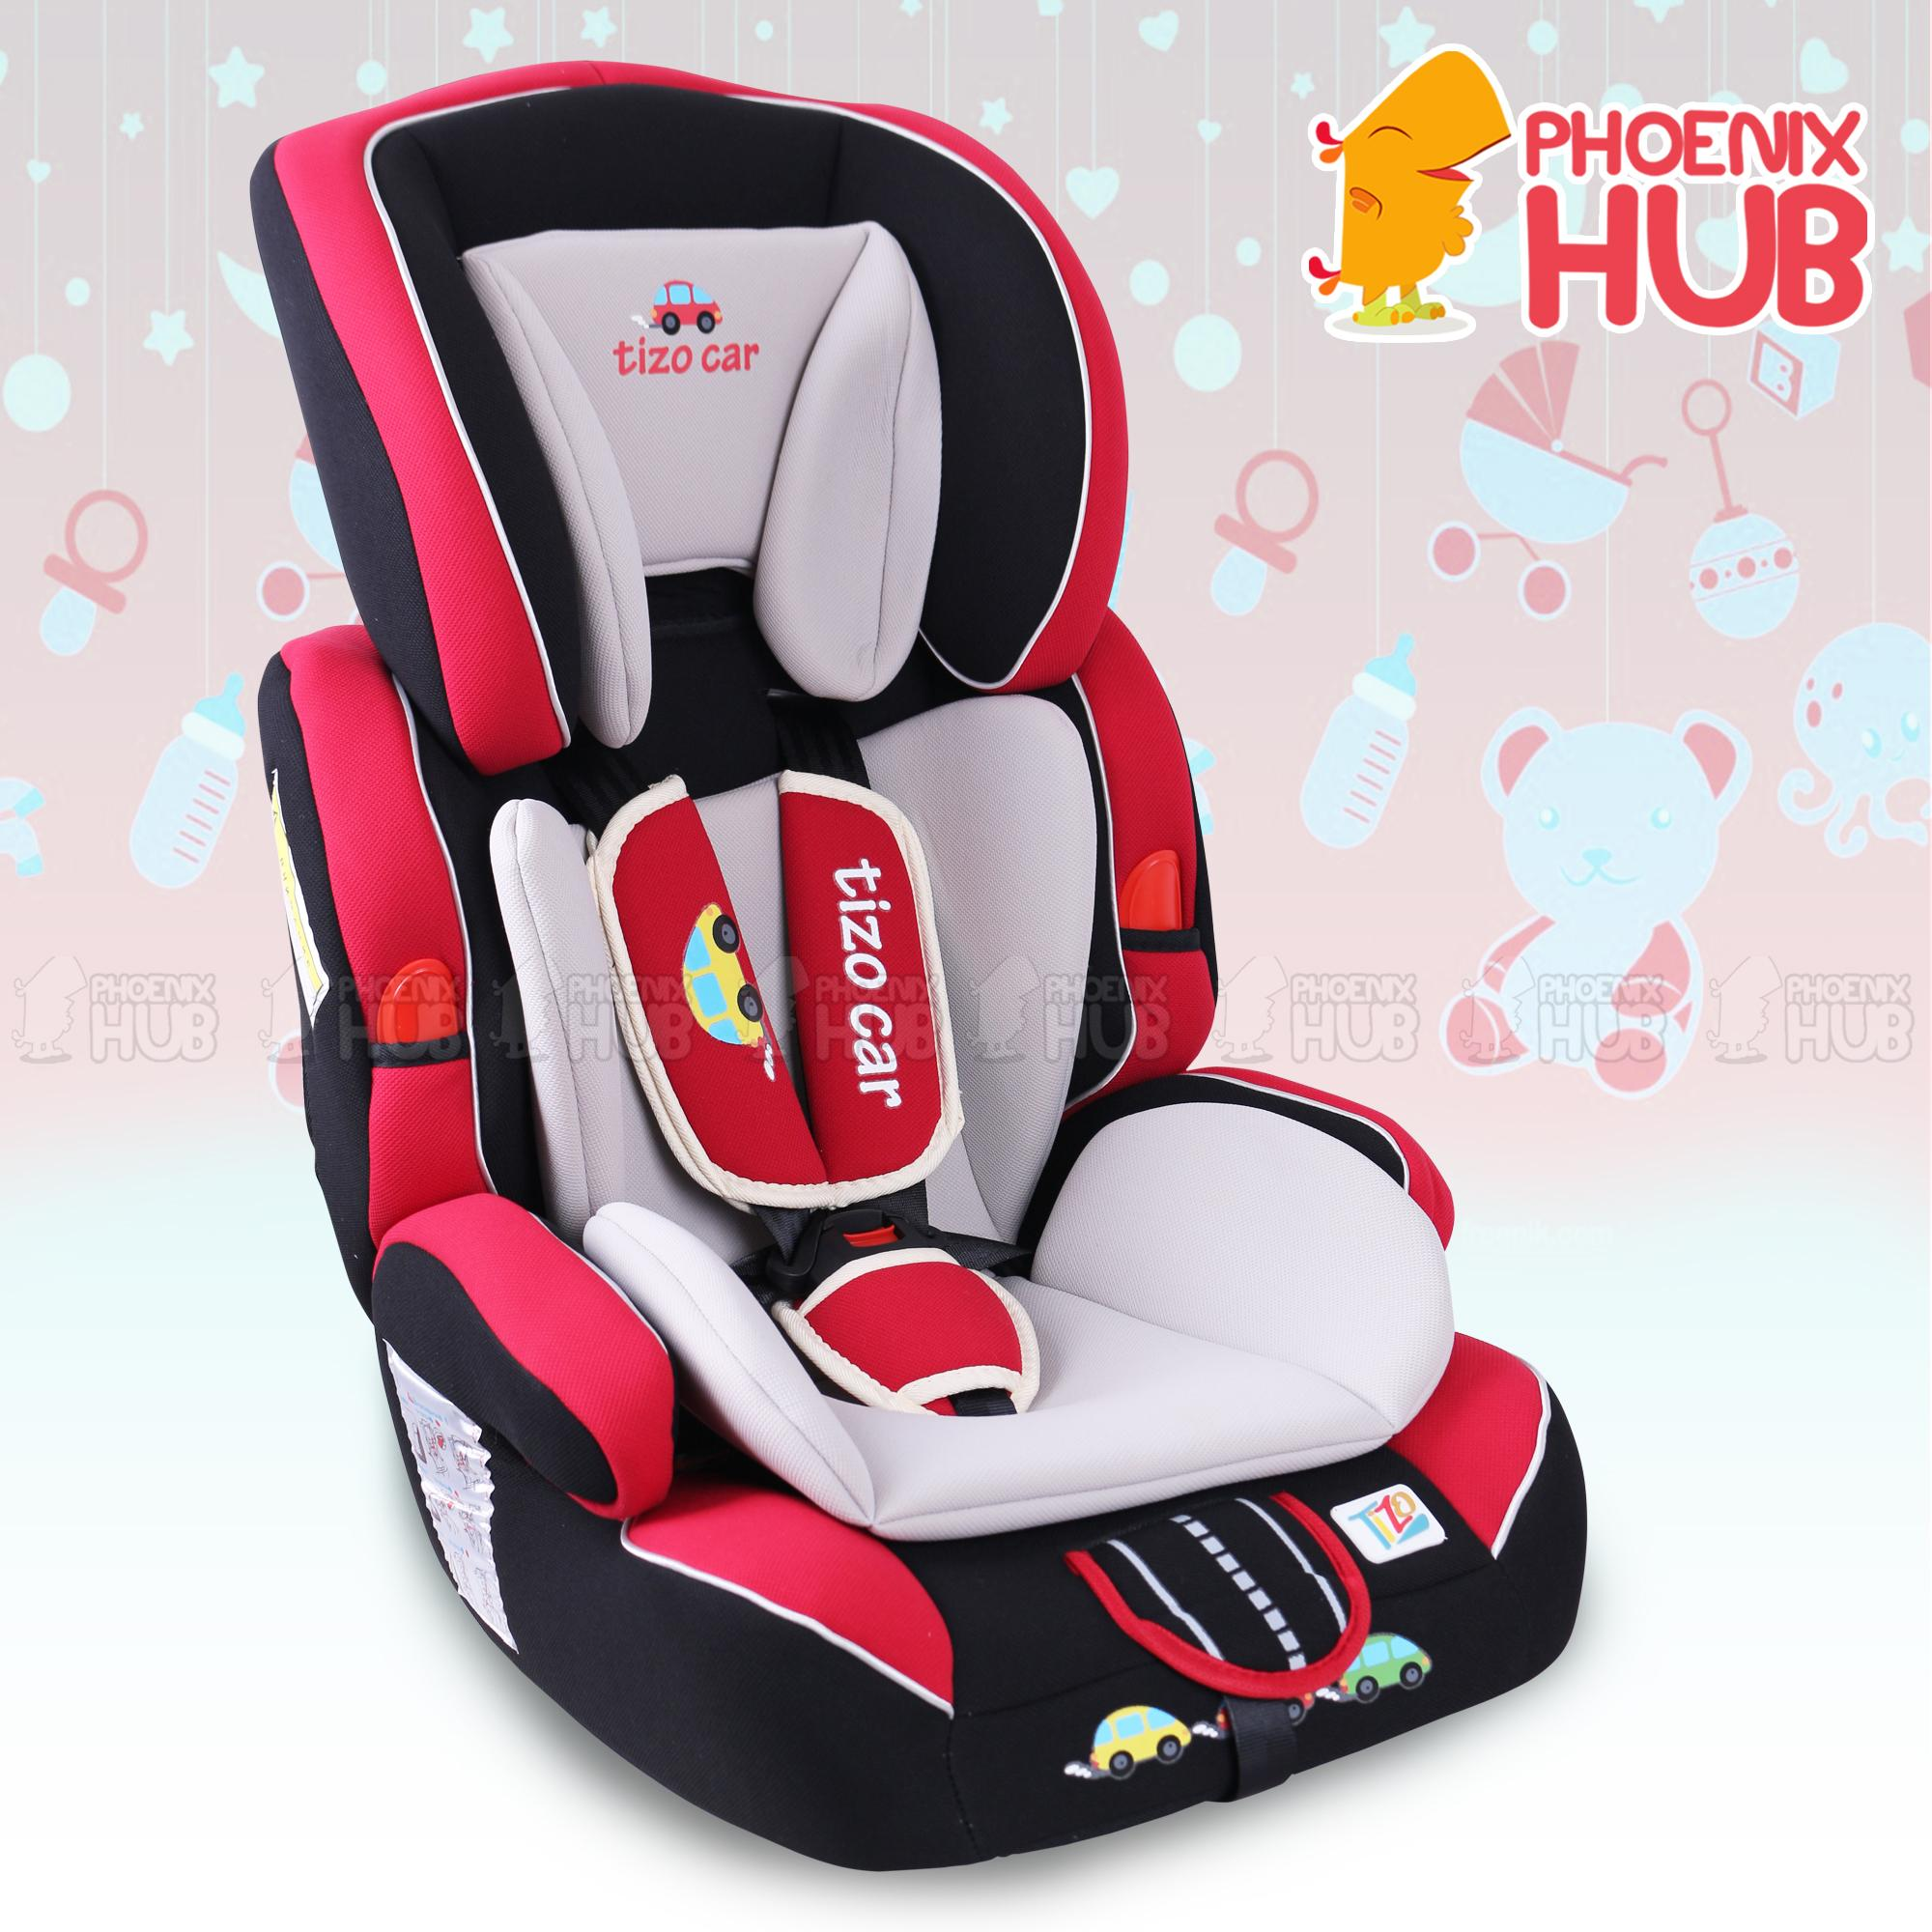 Baby Car Seat For Sale Online Brands Prices Reviews In Philippines Jpg